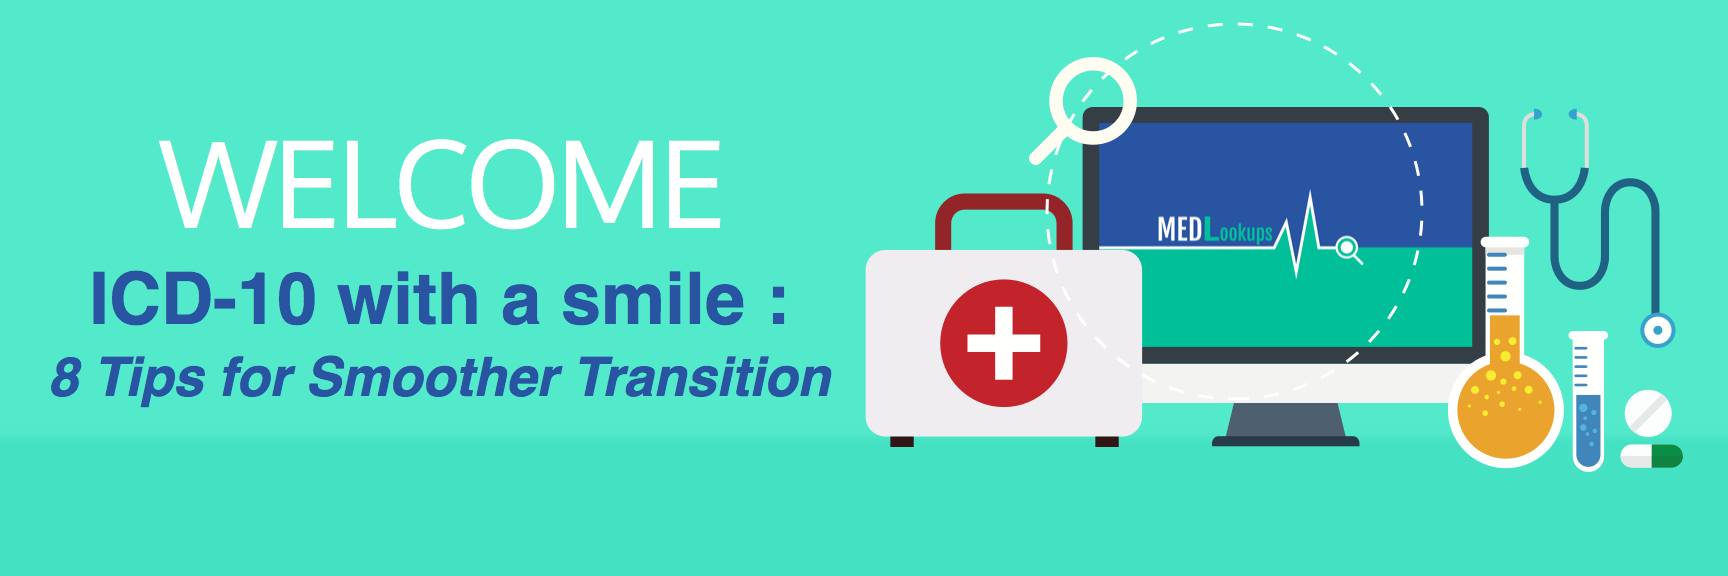 welcome ICD 10 with a smile 8 tips for smoother transition